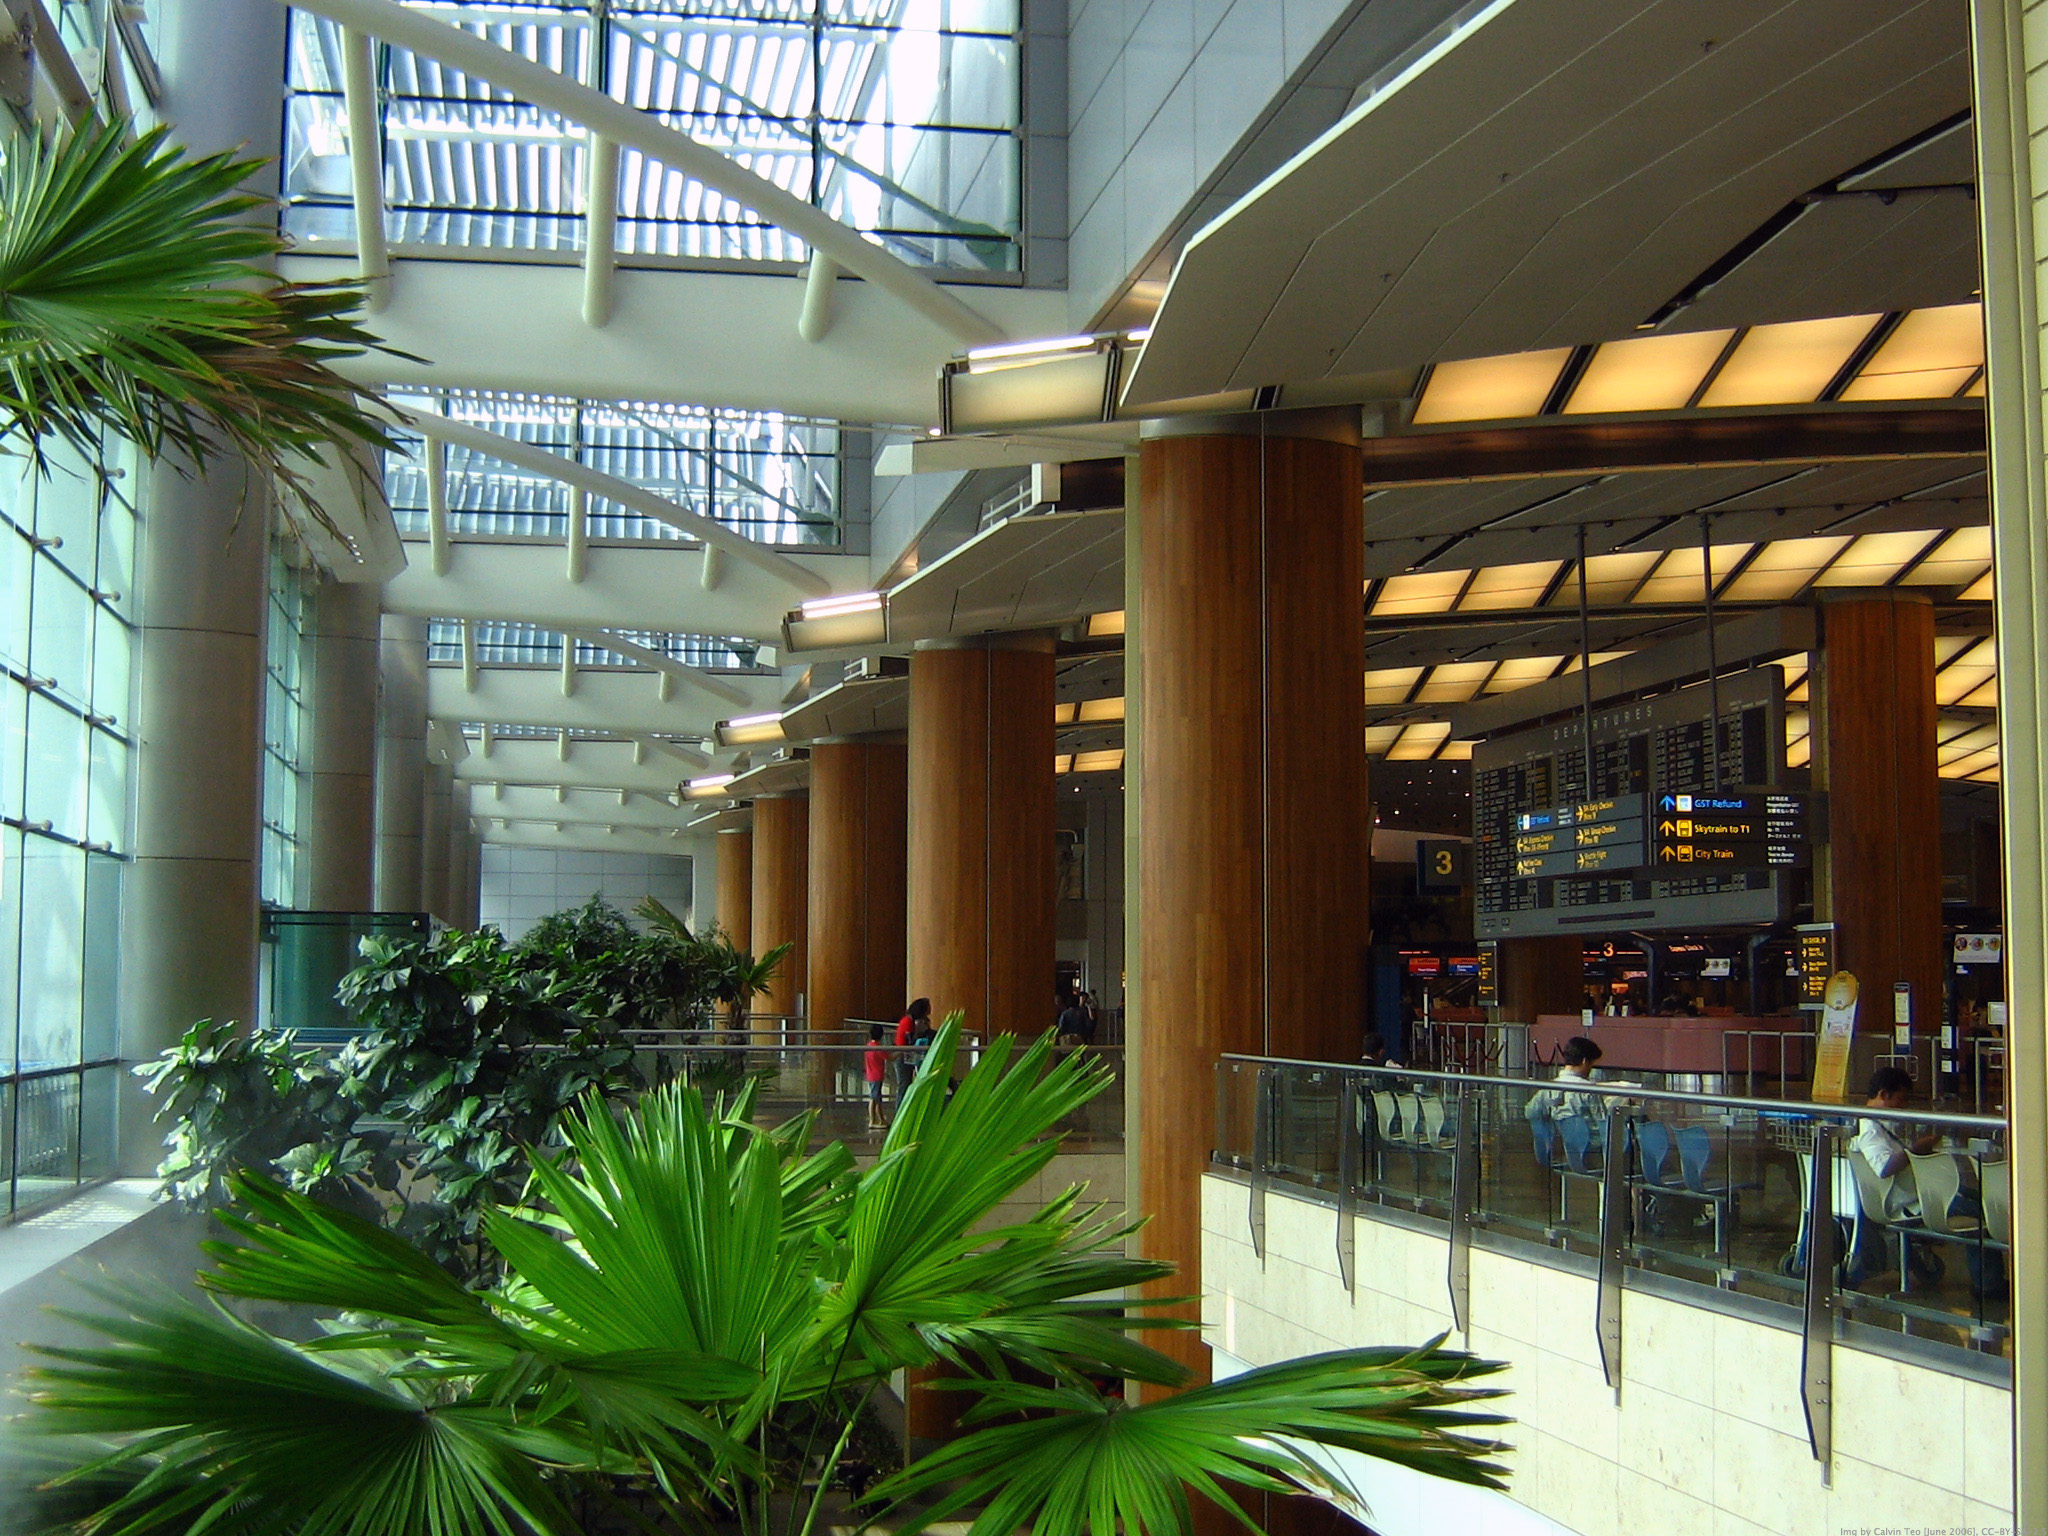 File:Singapore changi airport departure hall indoor garden ...